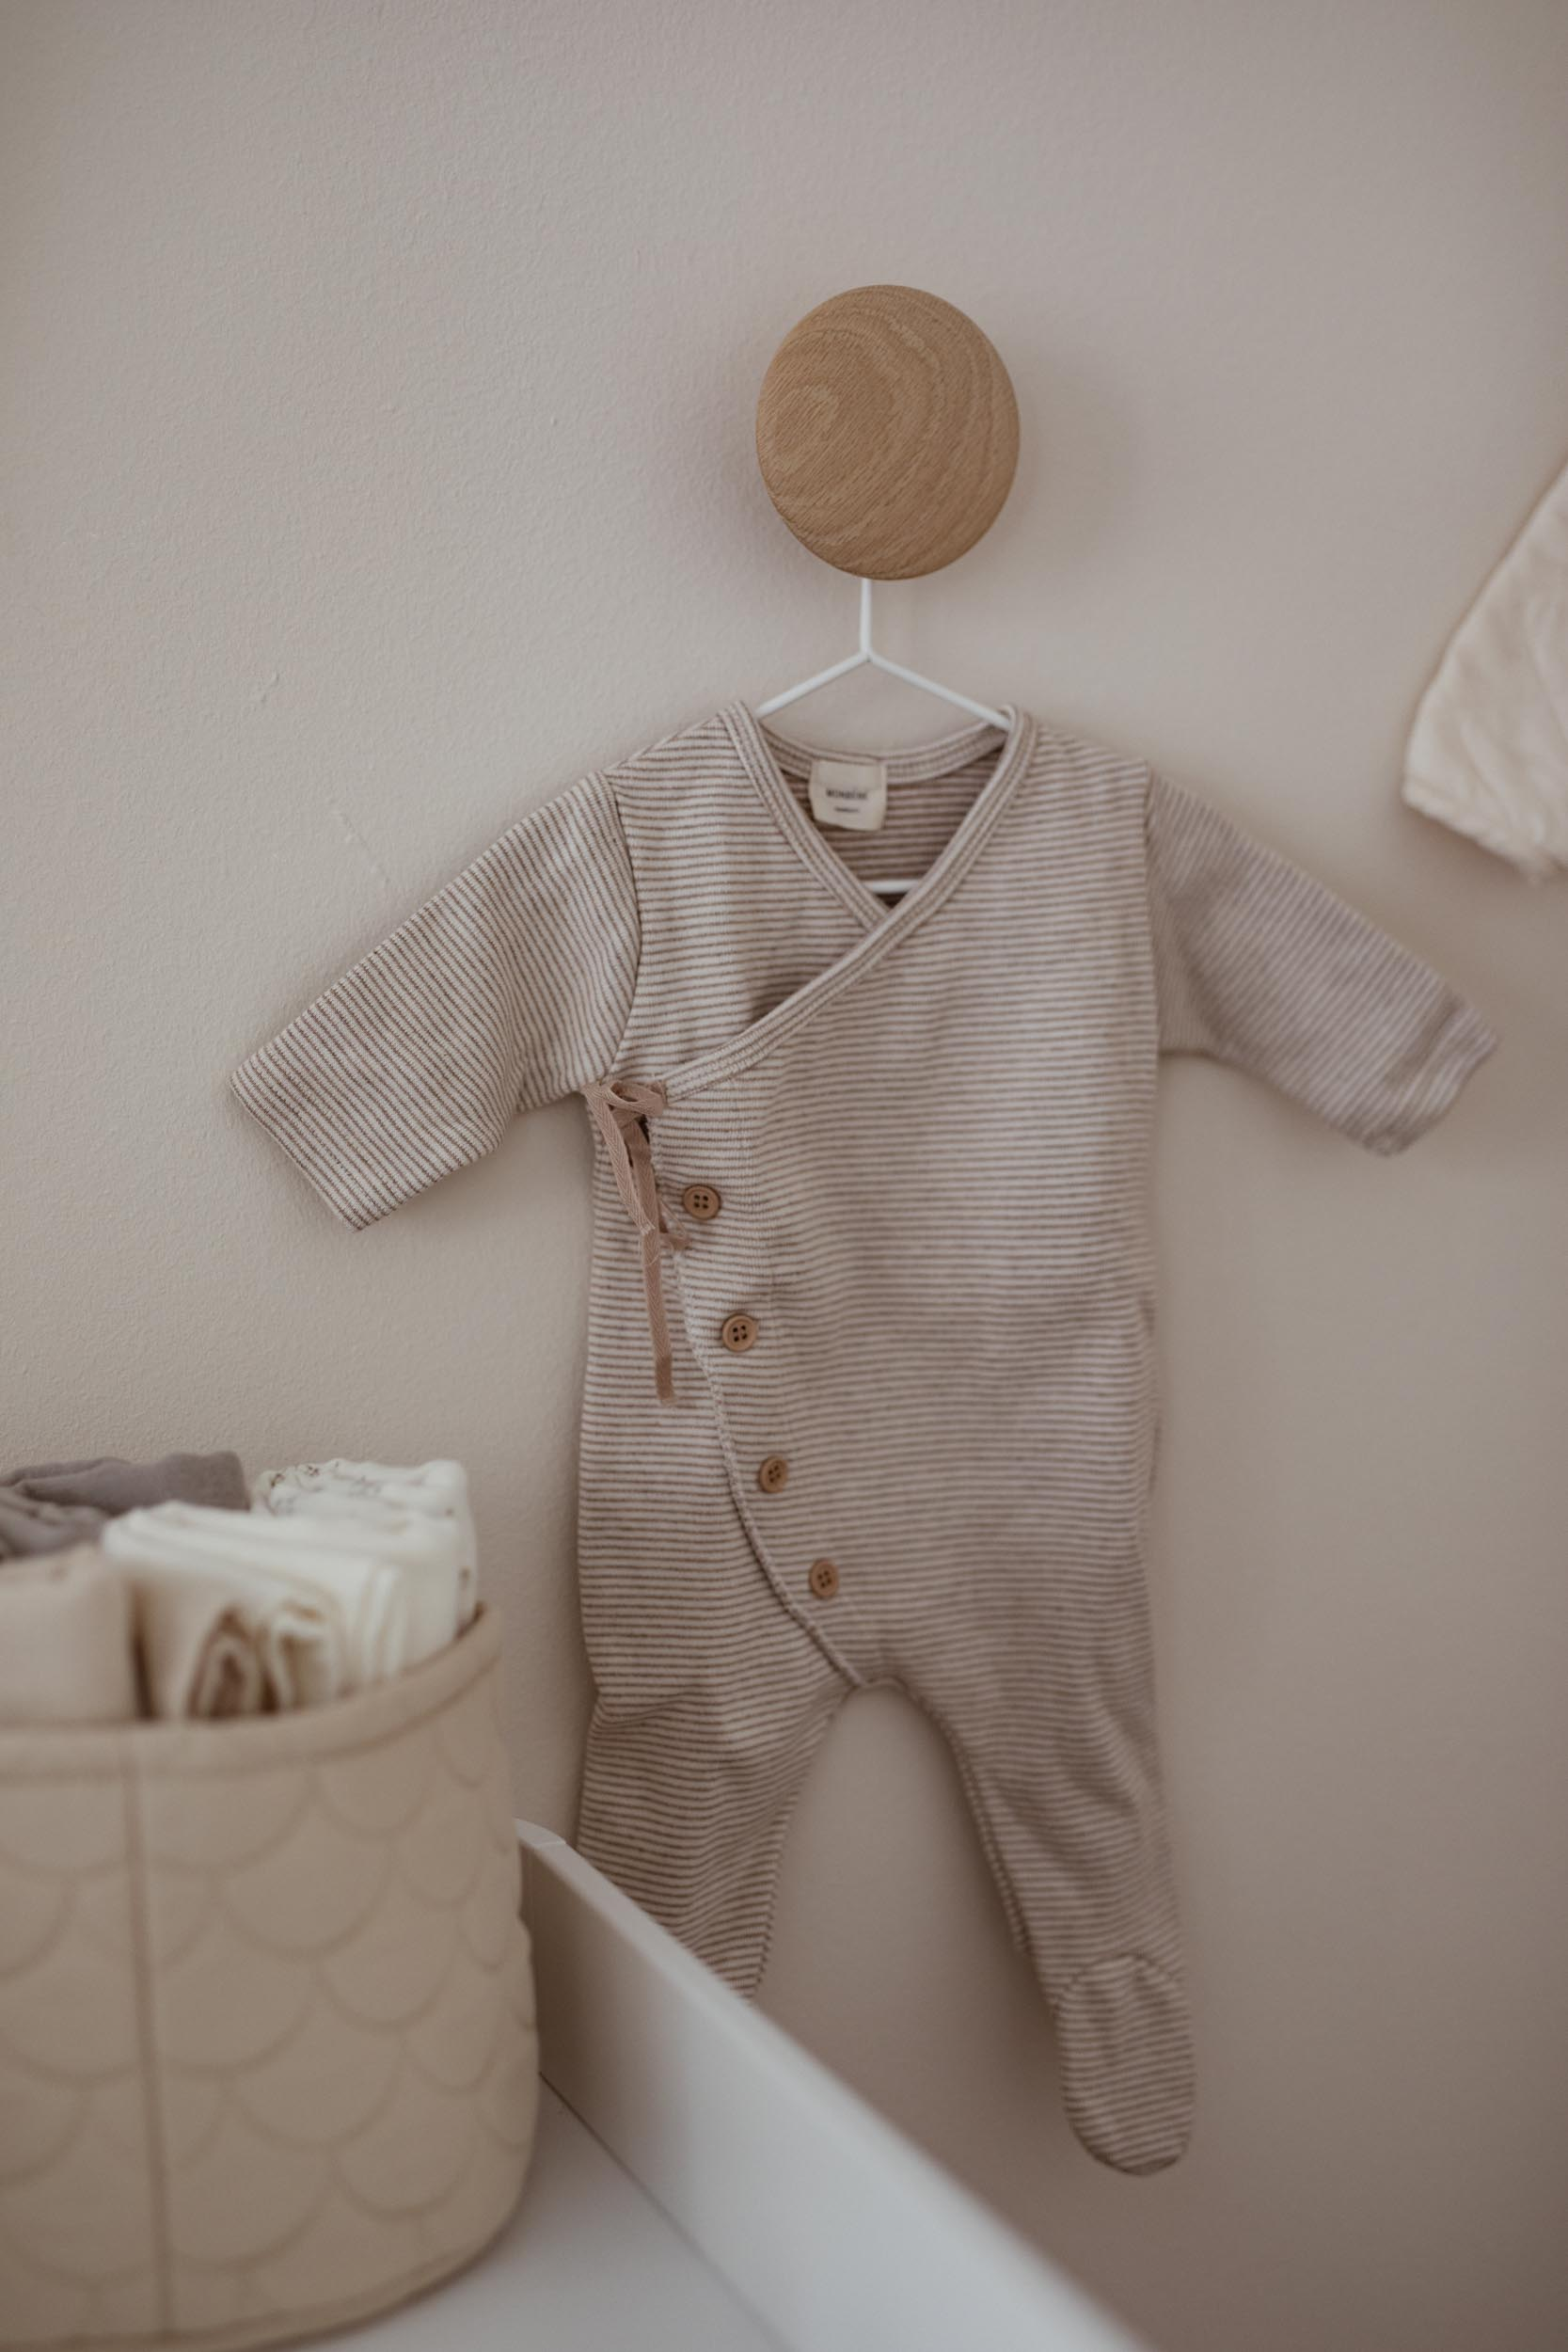 Baby Clothing: What does a newborn wear? - You Rock My Life